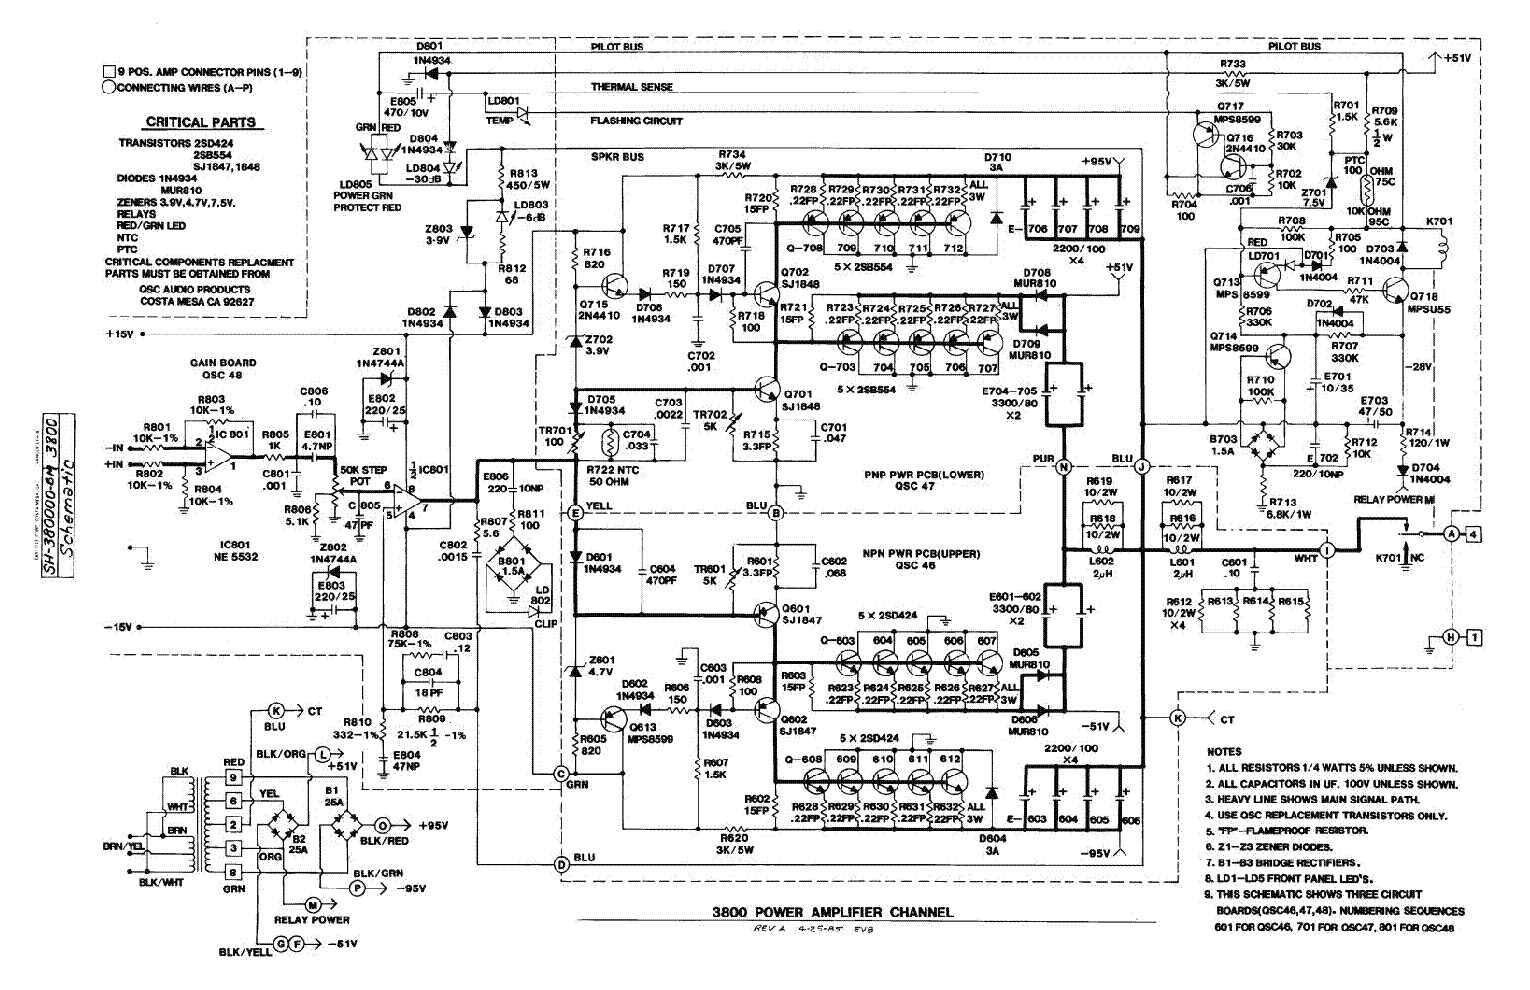 qsc 3800 service manual download  schematics  eeprom